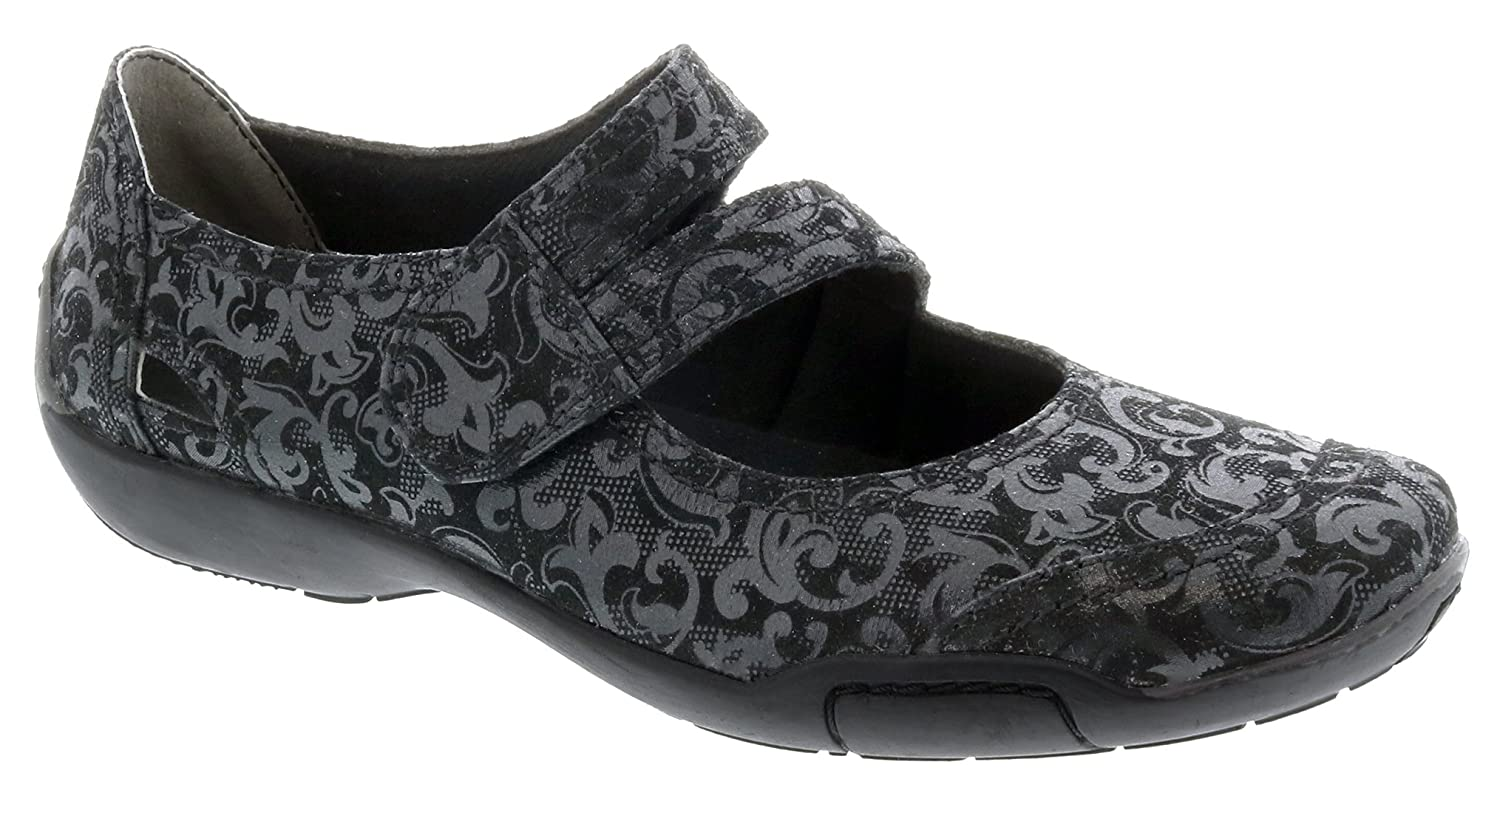 Ros Hommerson Chelsea Mary Jane Women's Slip On Shoes B07FNS2YQT 10 C/D US|Black/Jacquard